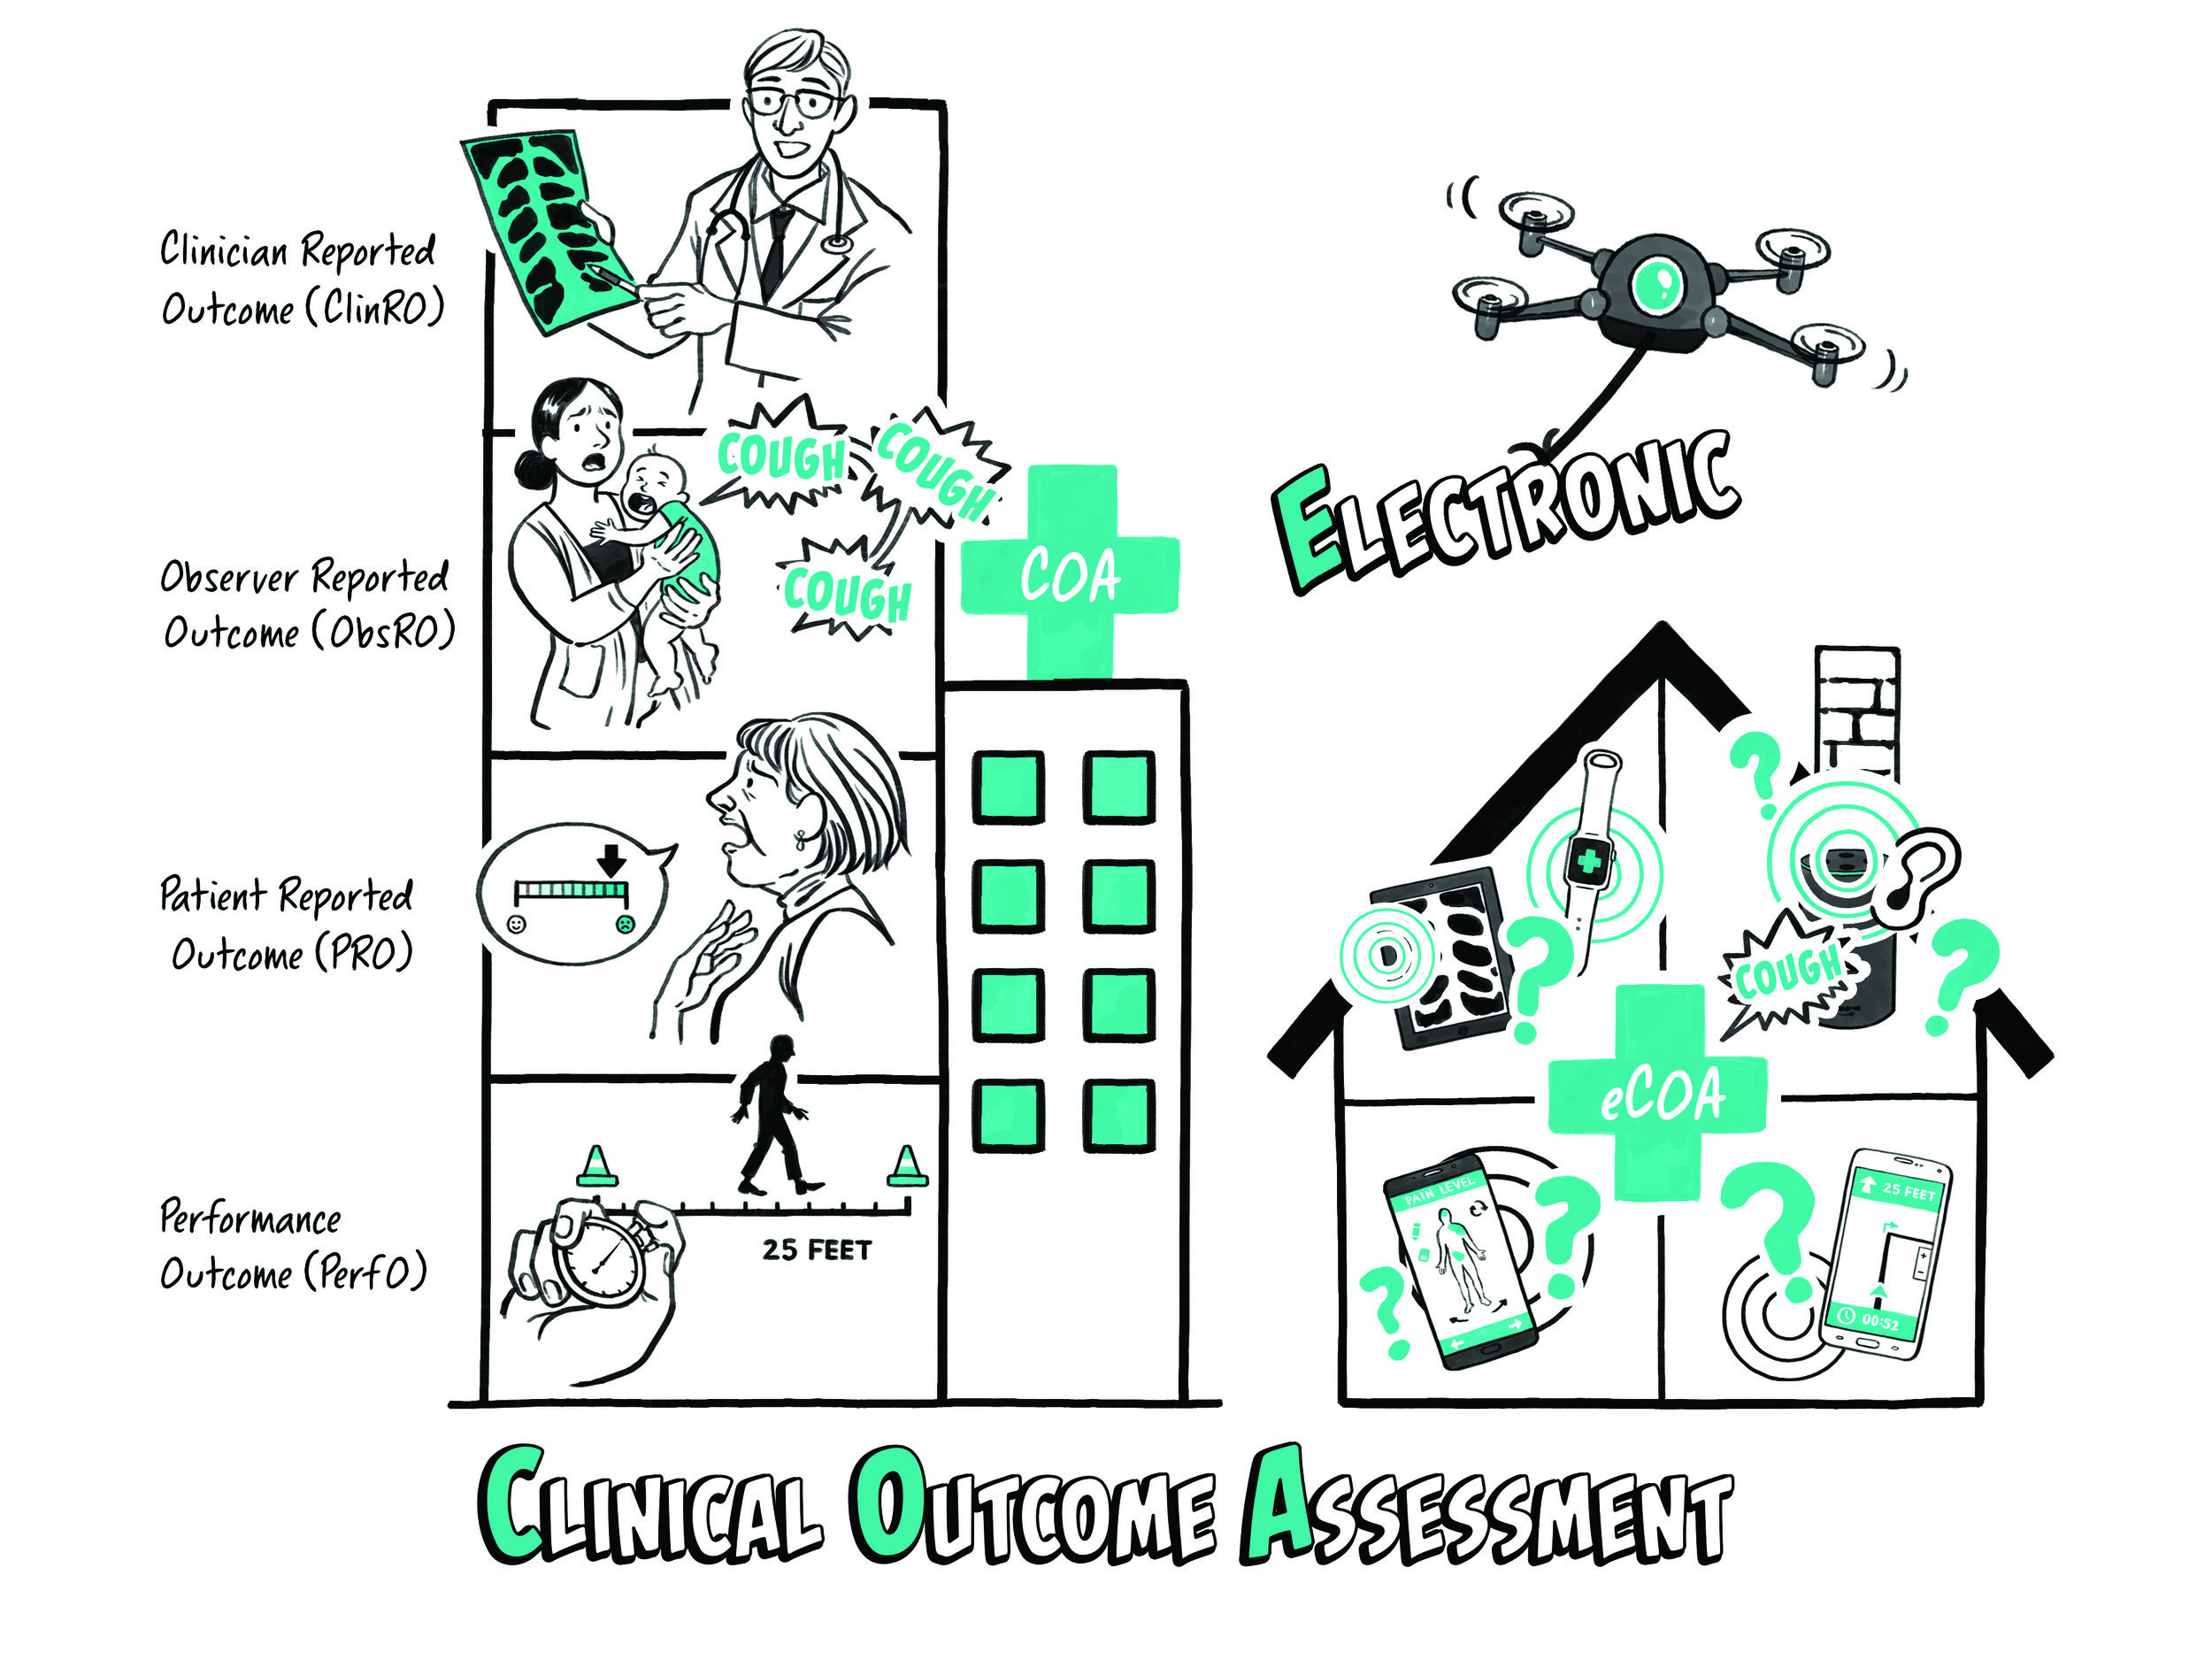 03 CLINICAL OUTCOME ASSESSMENT.jpg